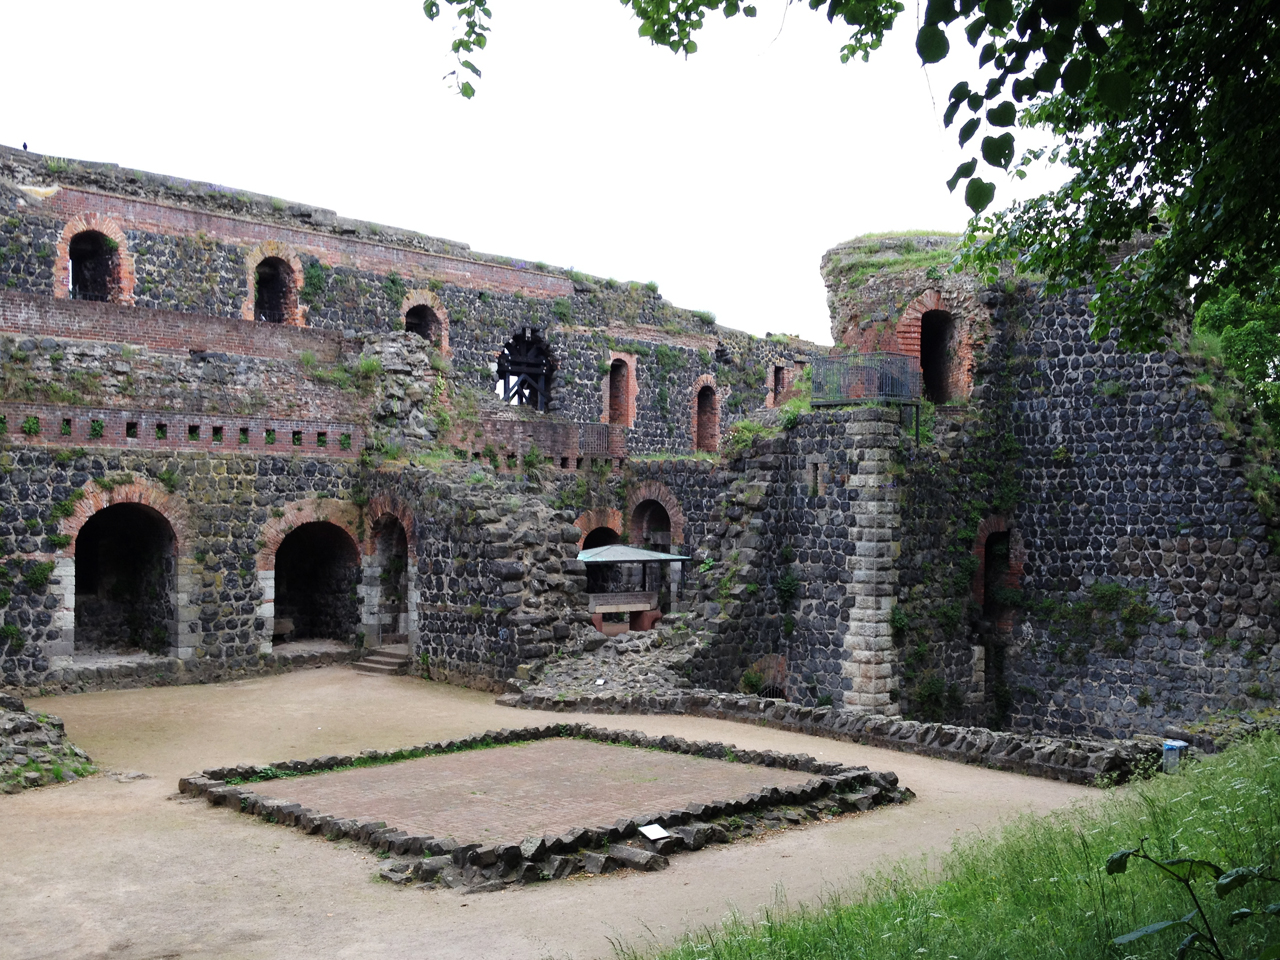 took transit to a German beer garden for dinner and on the way found these old ruins!